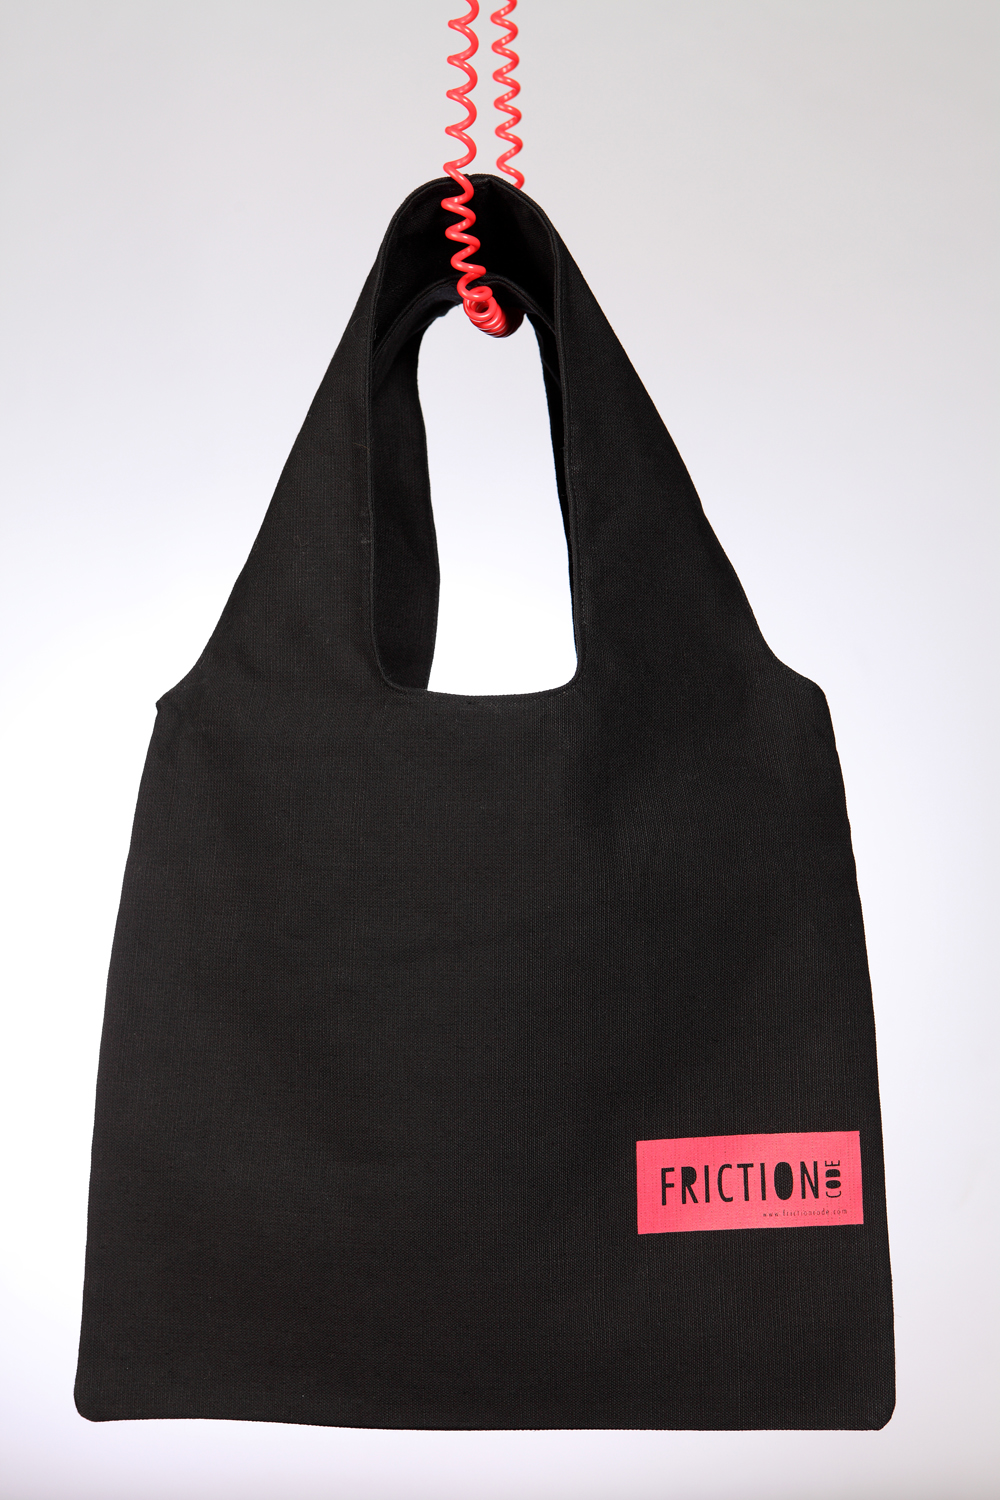 Black bag with red label